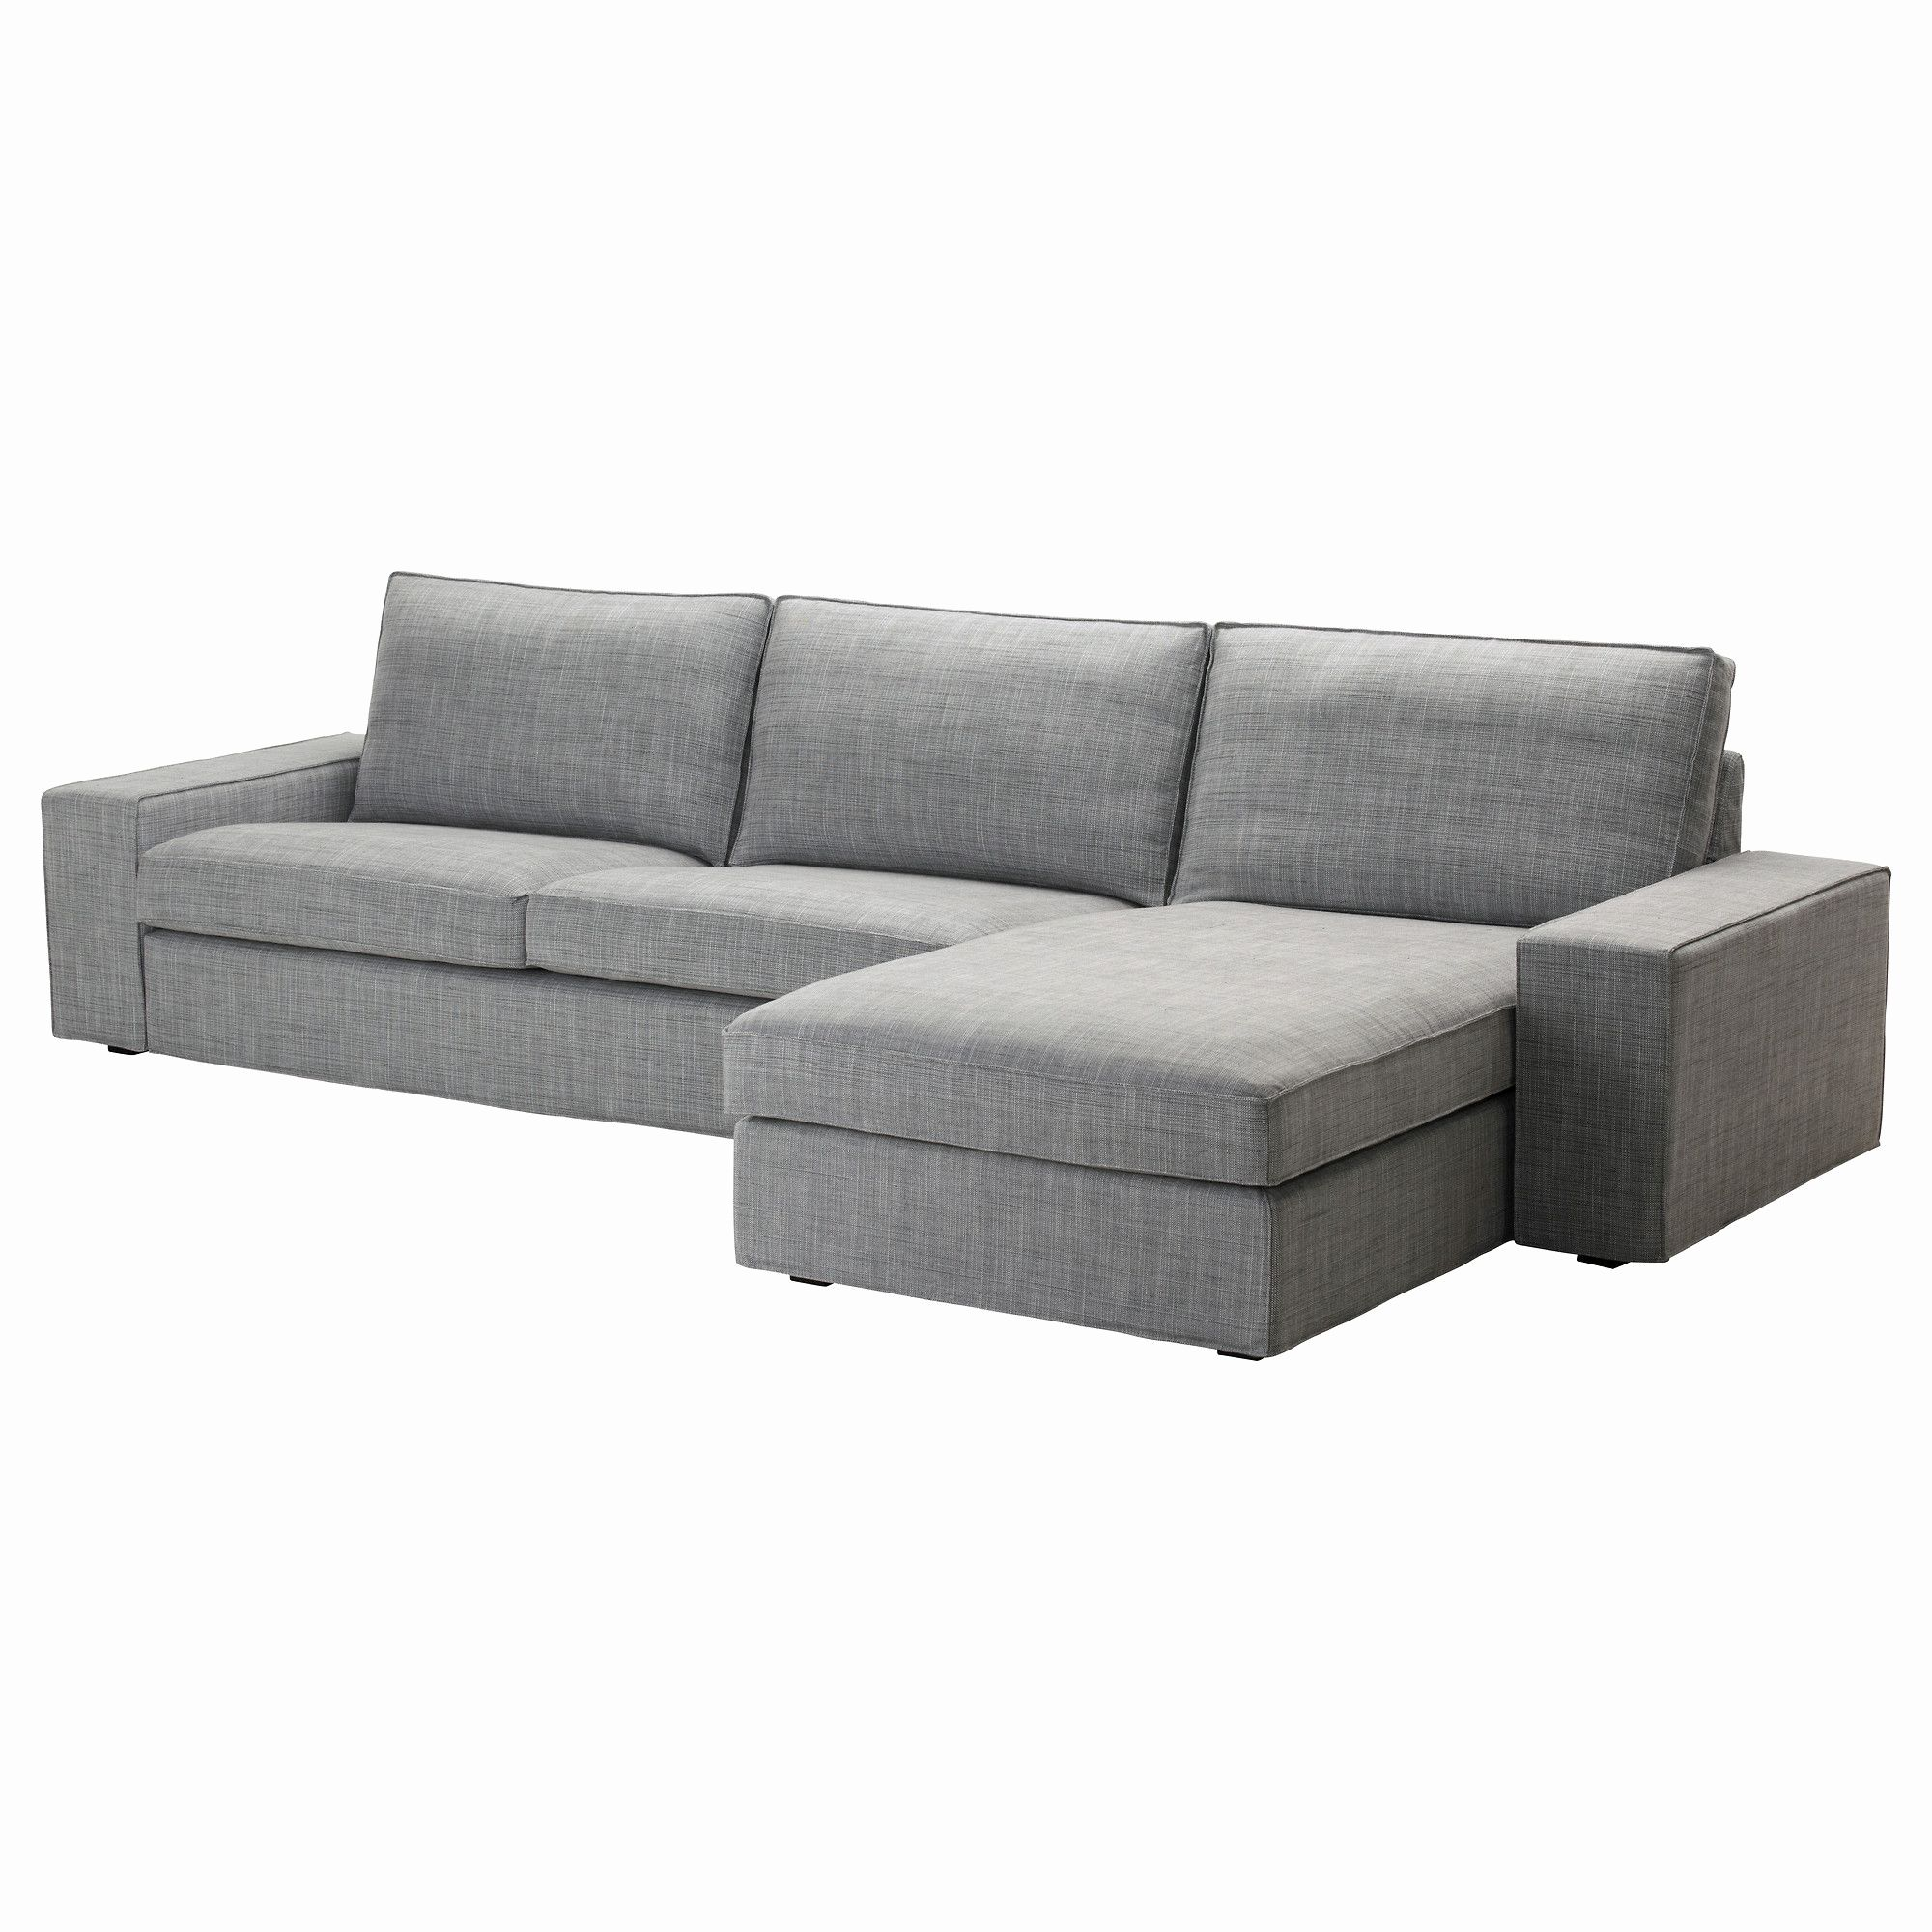 Bettsofa Hagalund 26 Best Of Hagalund Sofa Bed Sofa